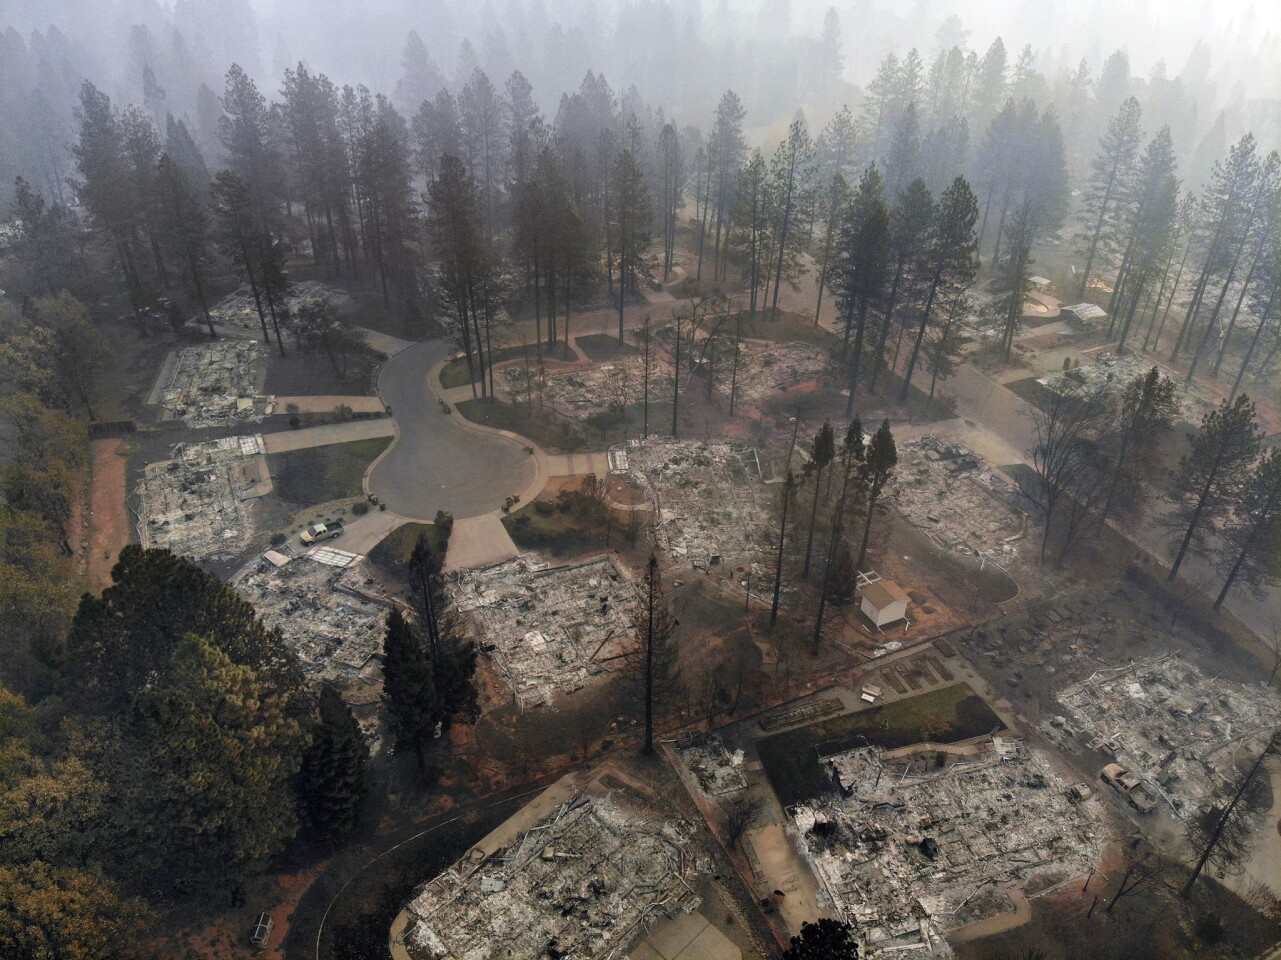 Ariel view of destruction from the Camp fire in Paradise off of Clark Road. The Camp Fire has burned more than 7,000 structures in Paradise.